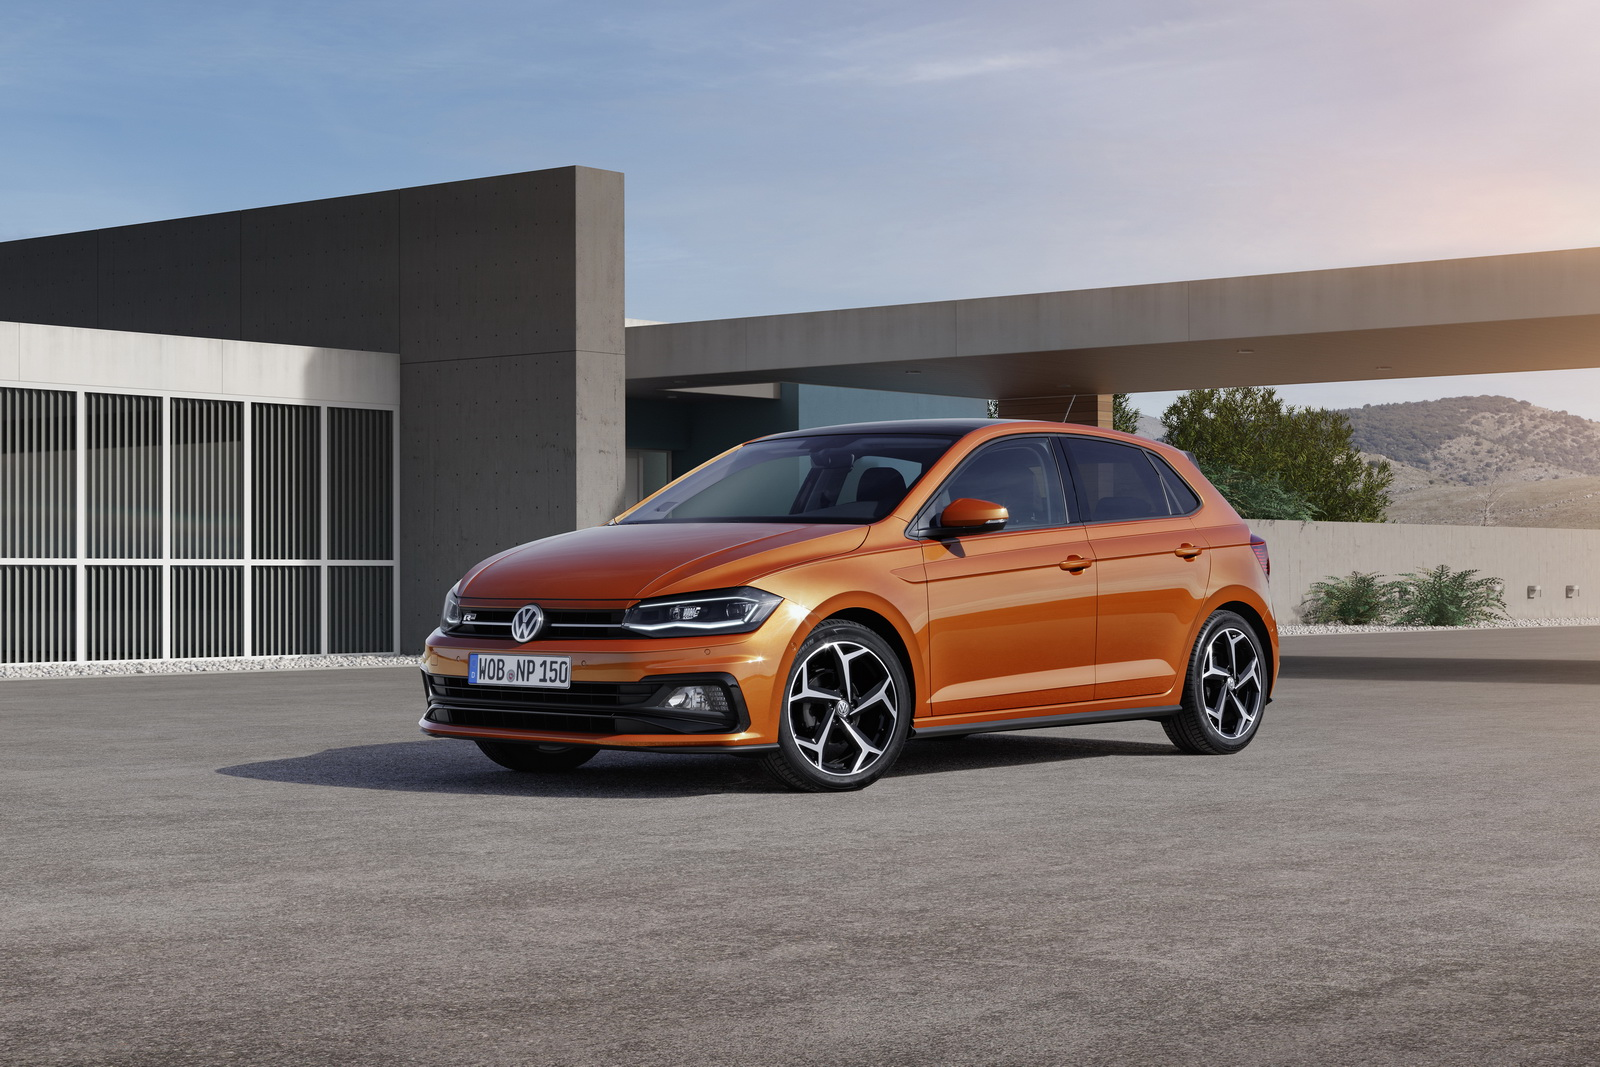 Volkswagen Polo and Polo GTI 2018 (7)